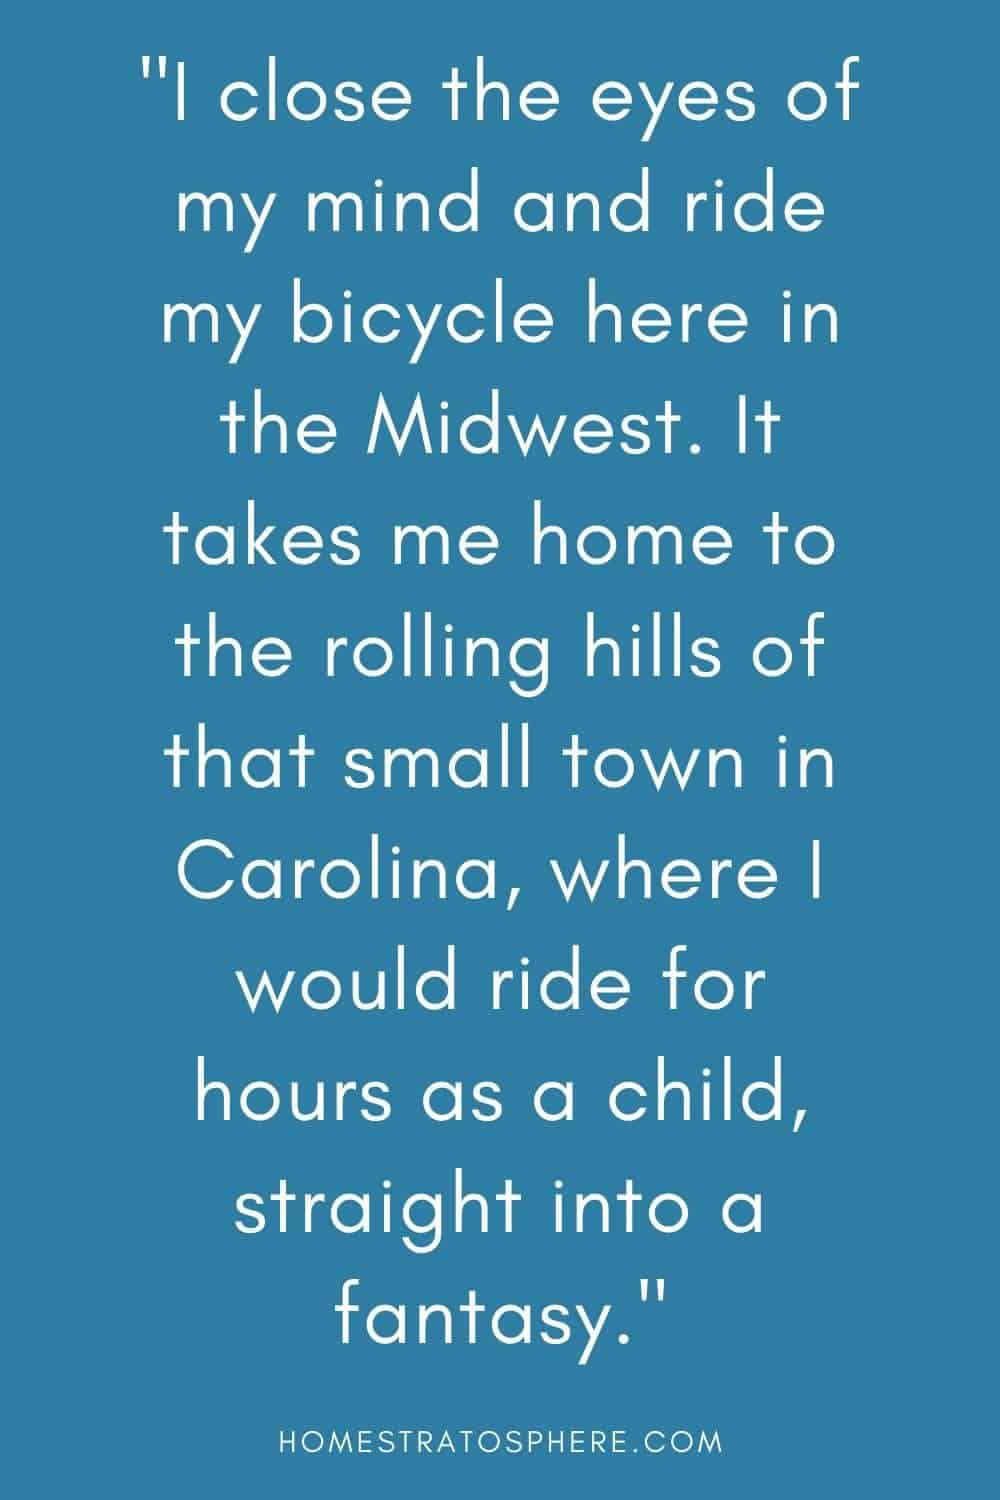 """""""I close the eyes of my mind and ride my bicycle here in the Midwest. It takes me home to the rolling hills of that small town in Carolina, where I would ride for hours as a child, straight into a fantasy."""""""